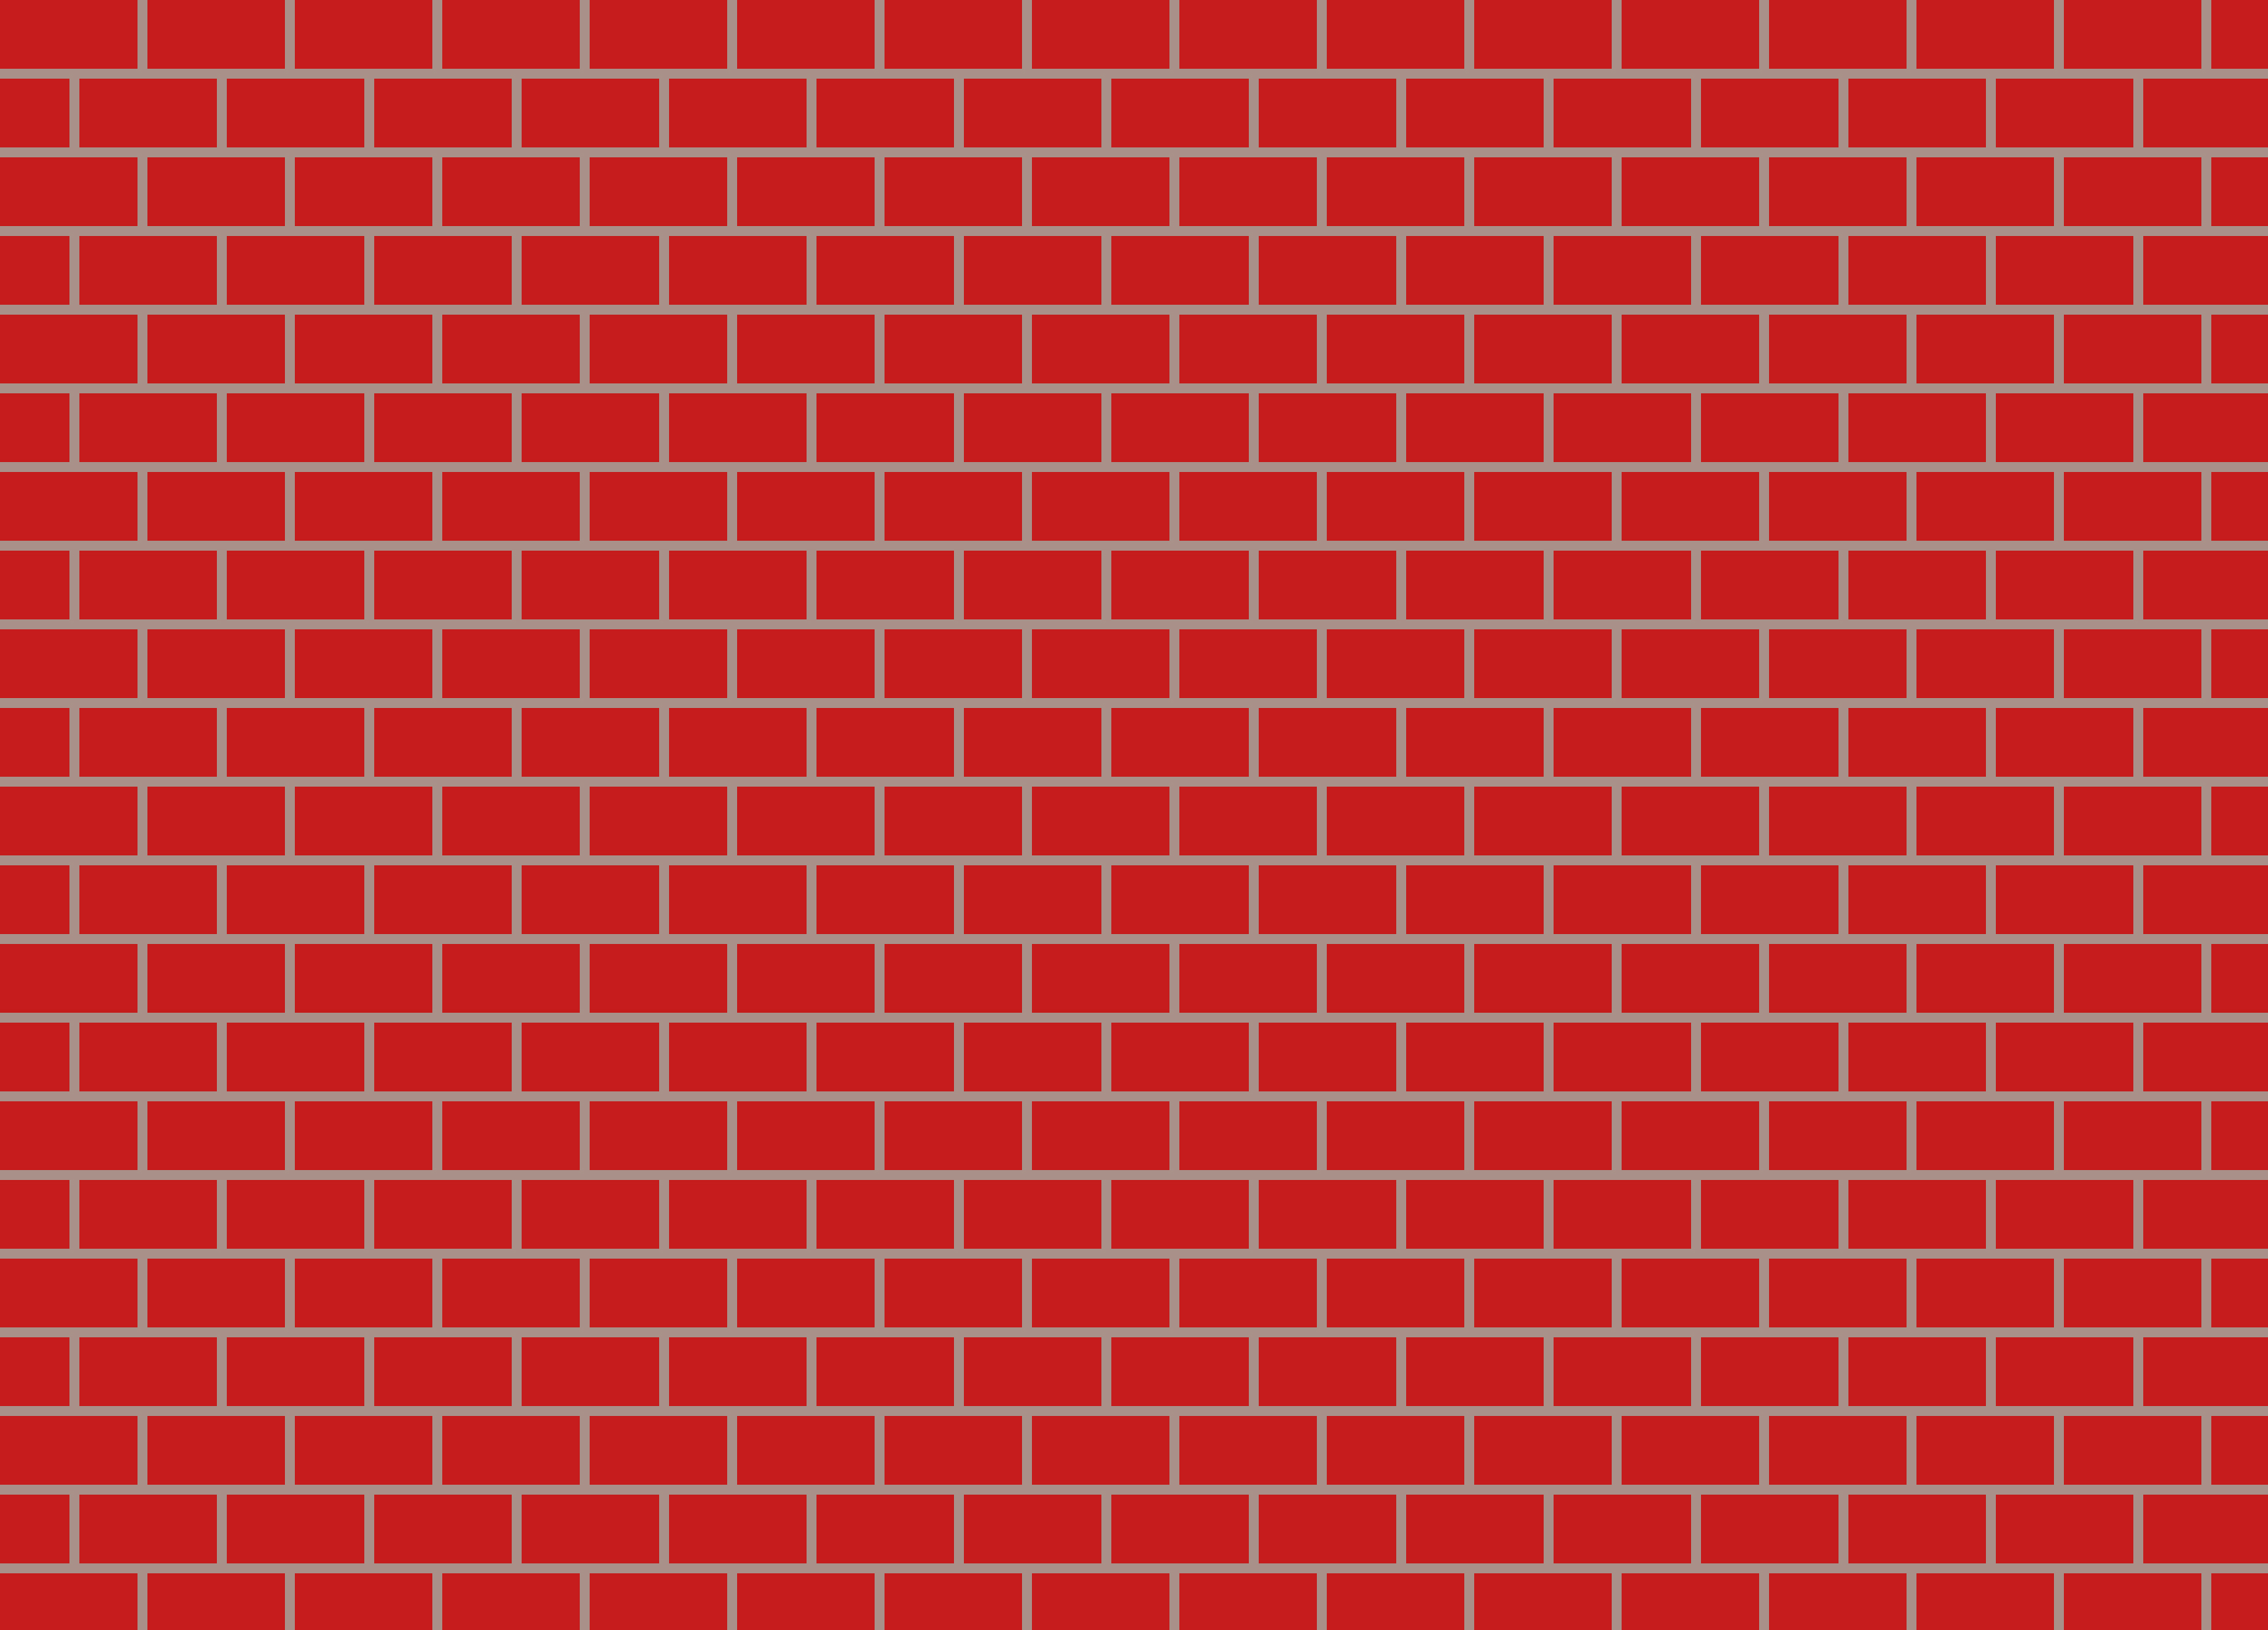 image royalty free library Free cliparts download clip. Brick wall background clipart